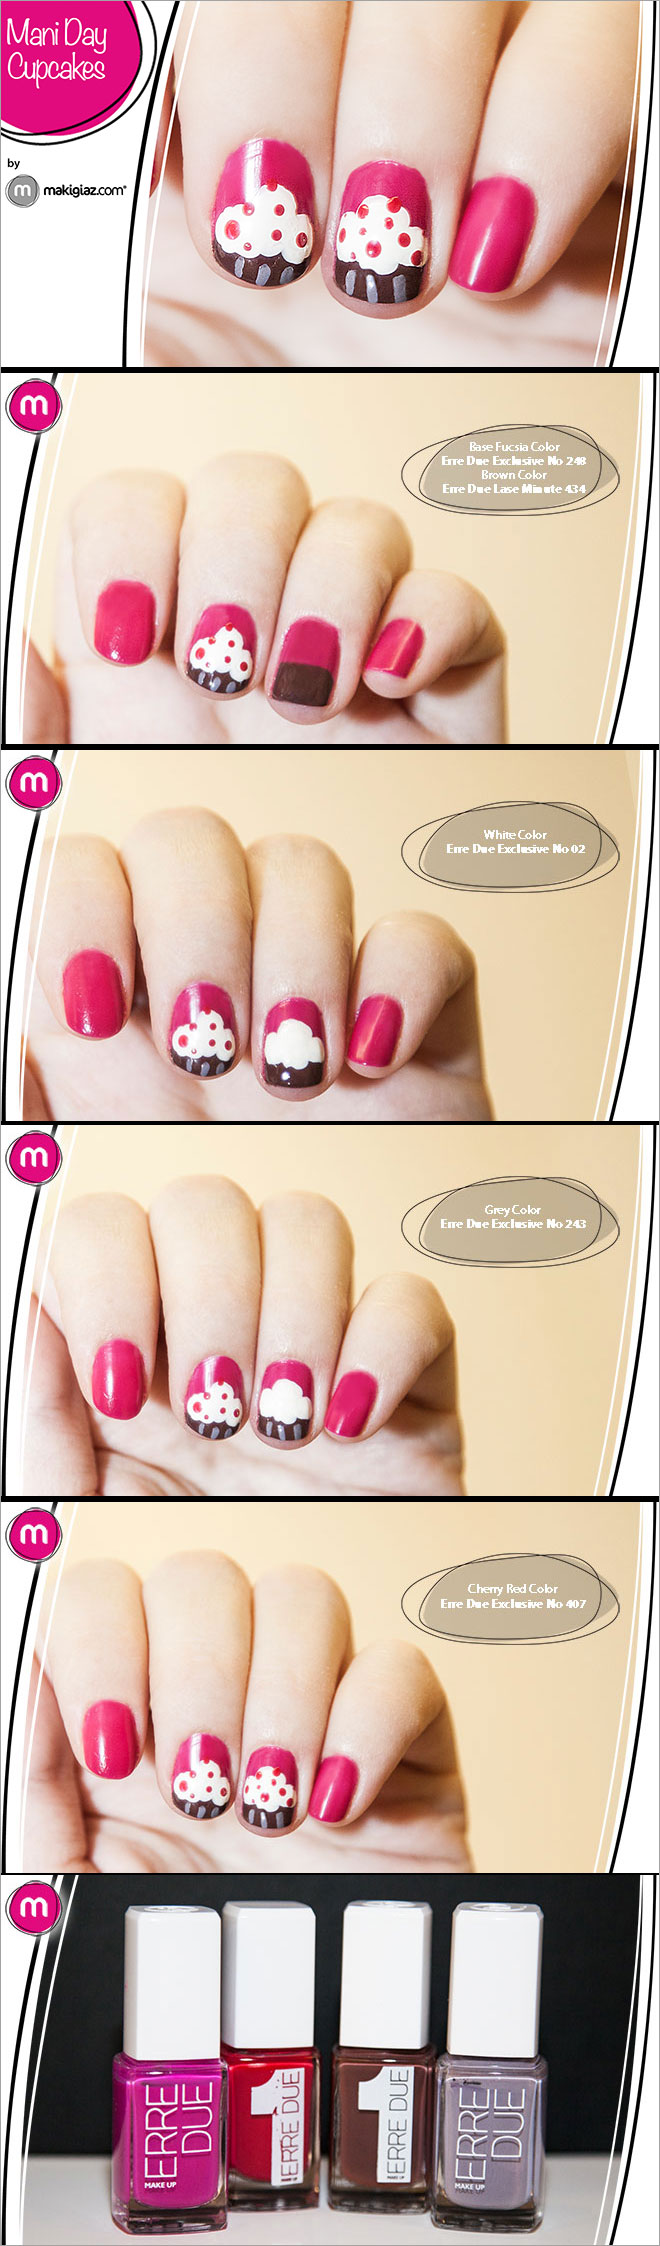 Mani Day - Cupcakes με Erre Due - Makigiaz Com